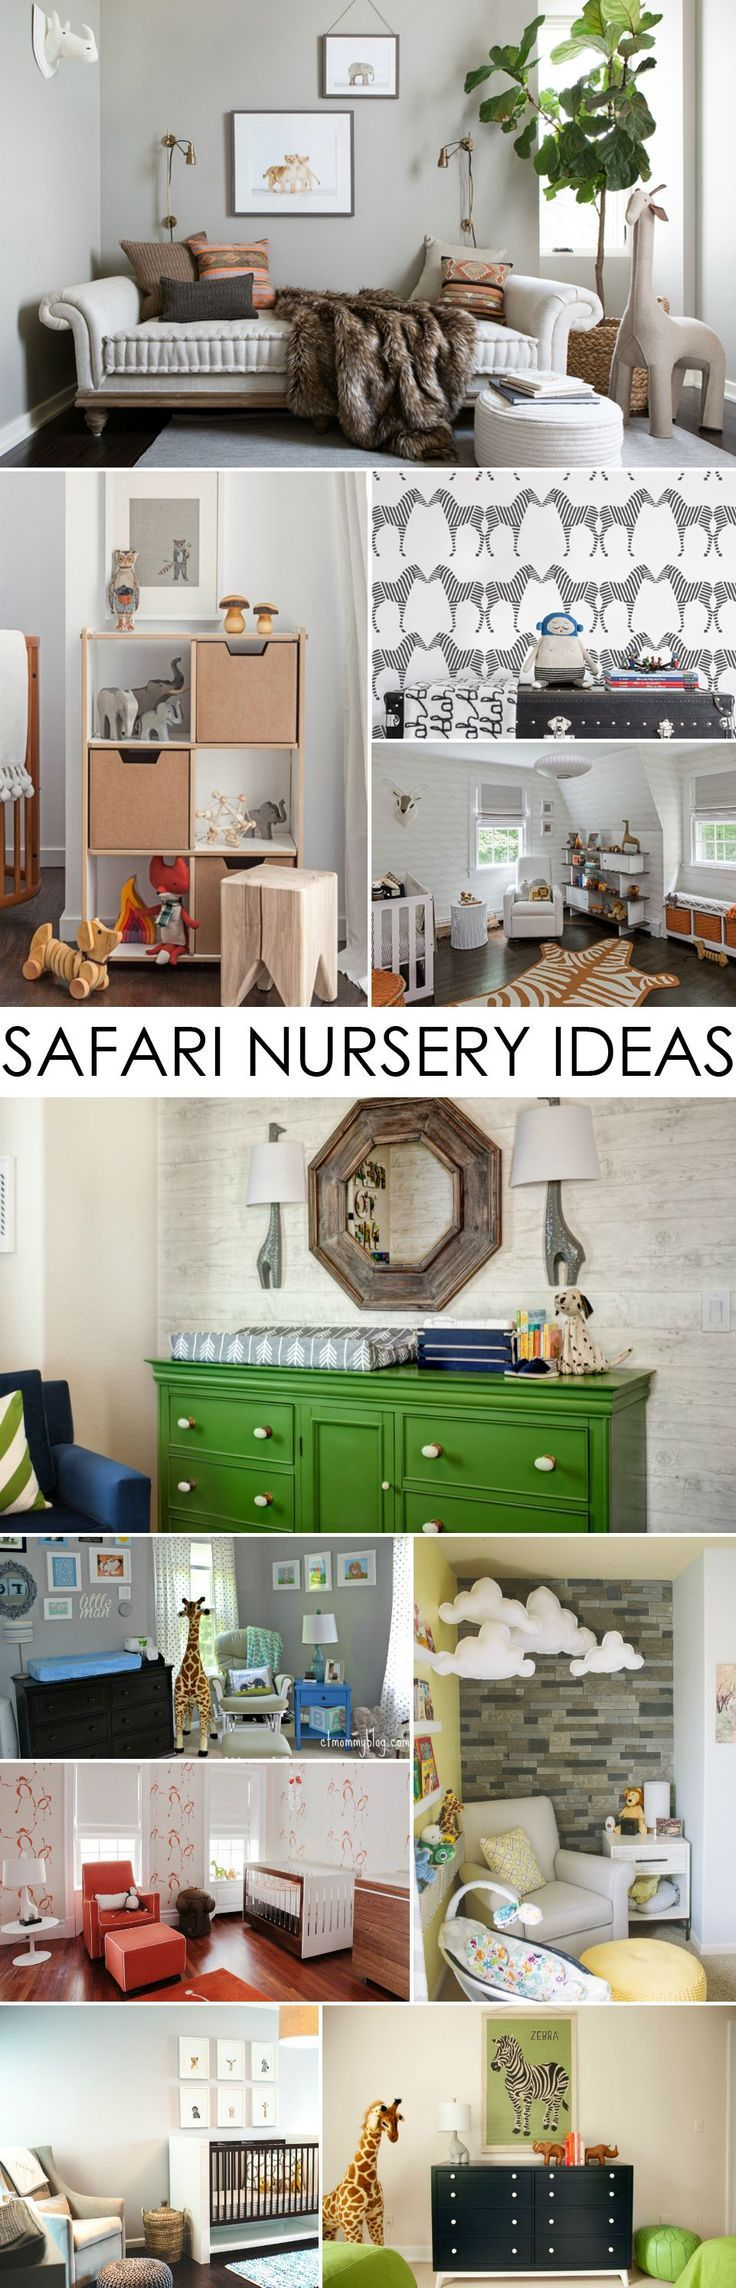 Best 25+ Safari theme bedroom ideas on Pinterest | Safari bedroom, Boys  jungle bedroom and Safari room decor